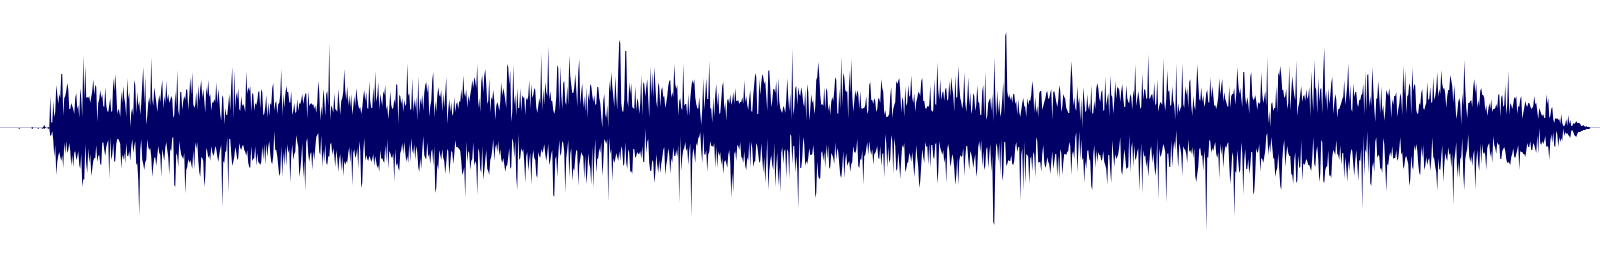 waveform of track #110023